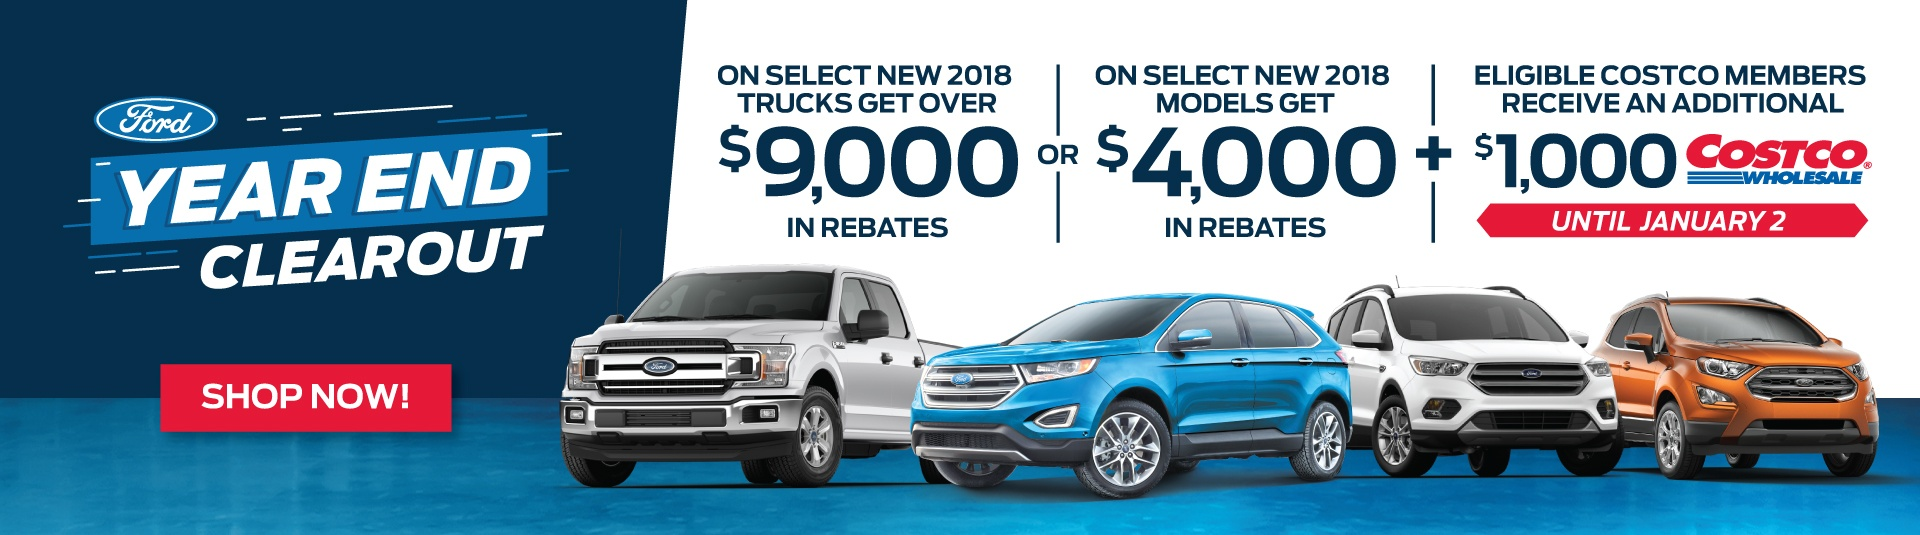 Ford Year End Clearout Event